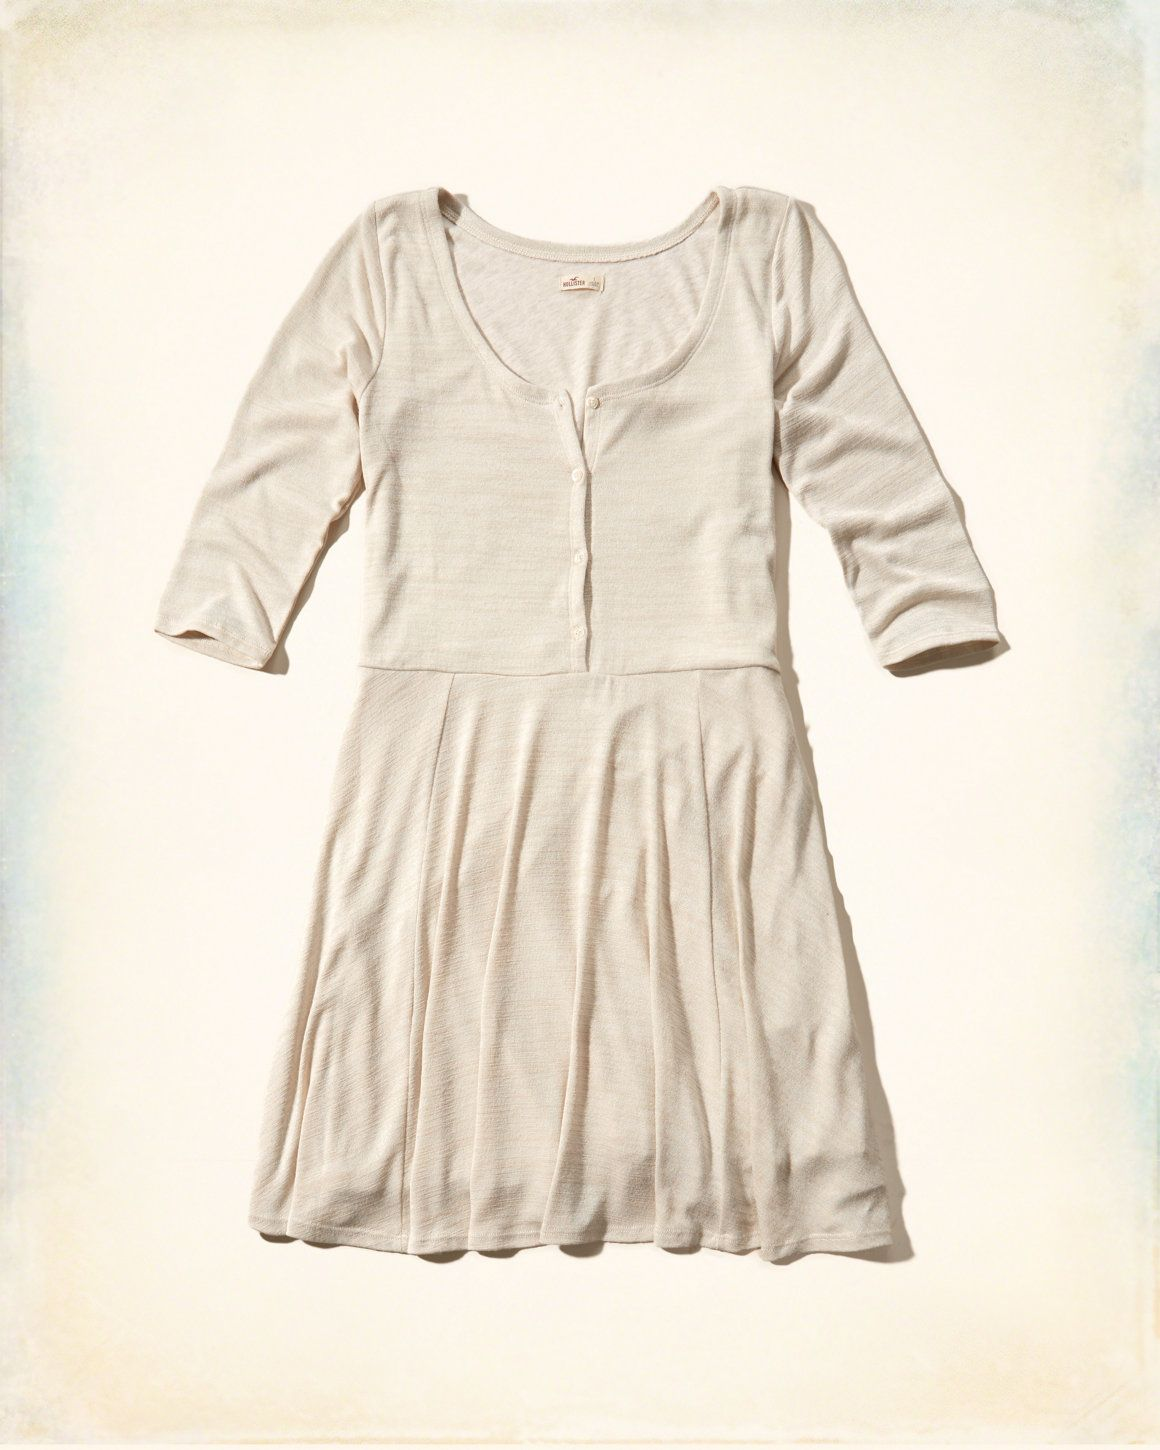 Supersoft and drapey knit with button closure at front, Imported